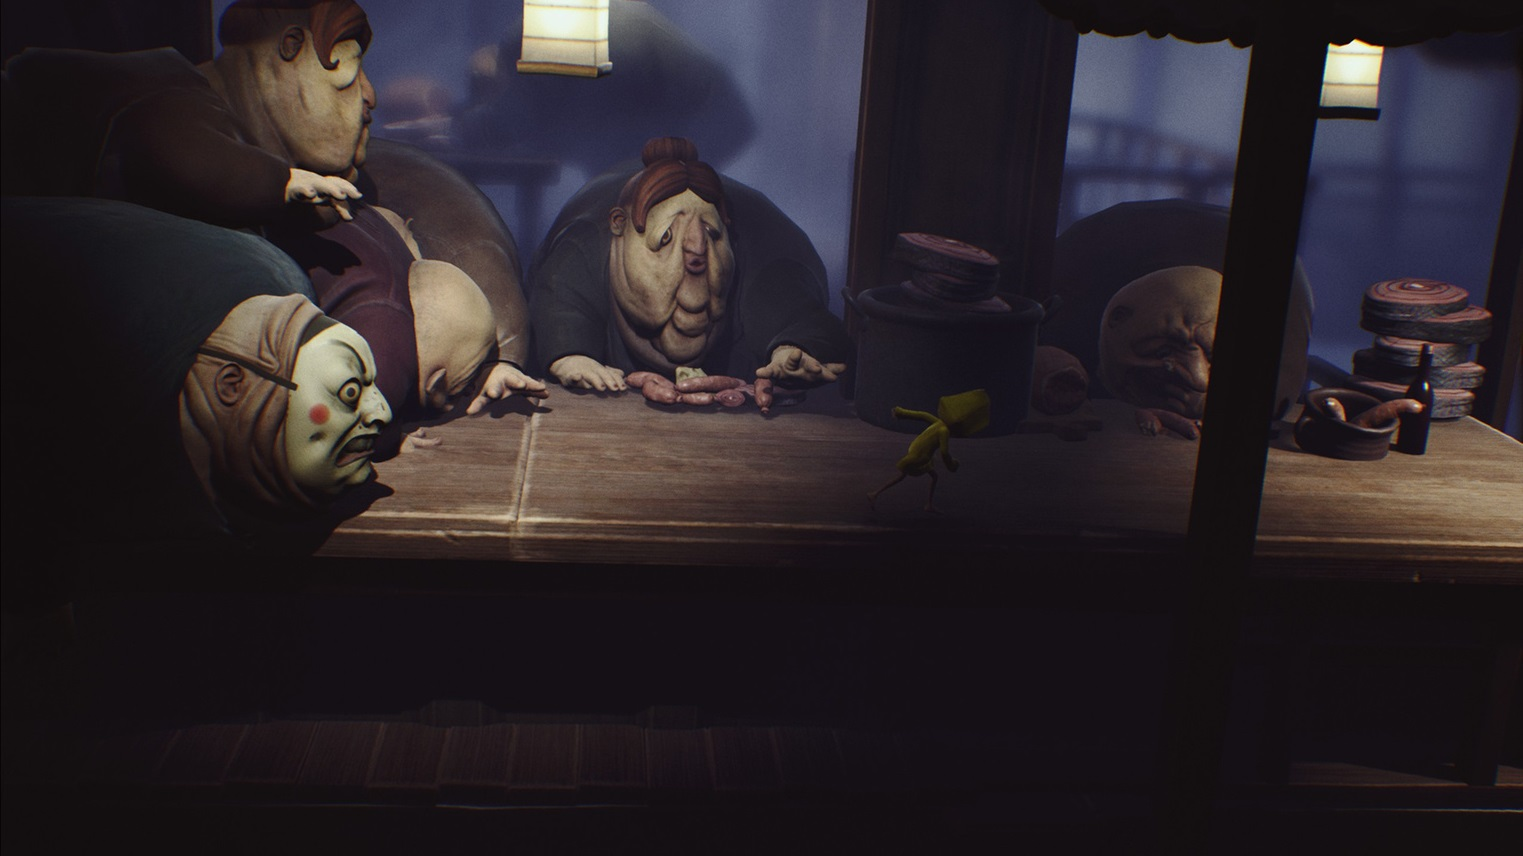 In this part of the Little Nightmares story, Six has to run through the dining hall past all of the hungry Guests.